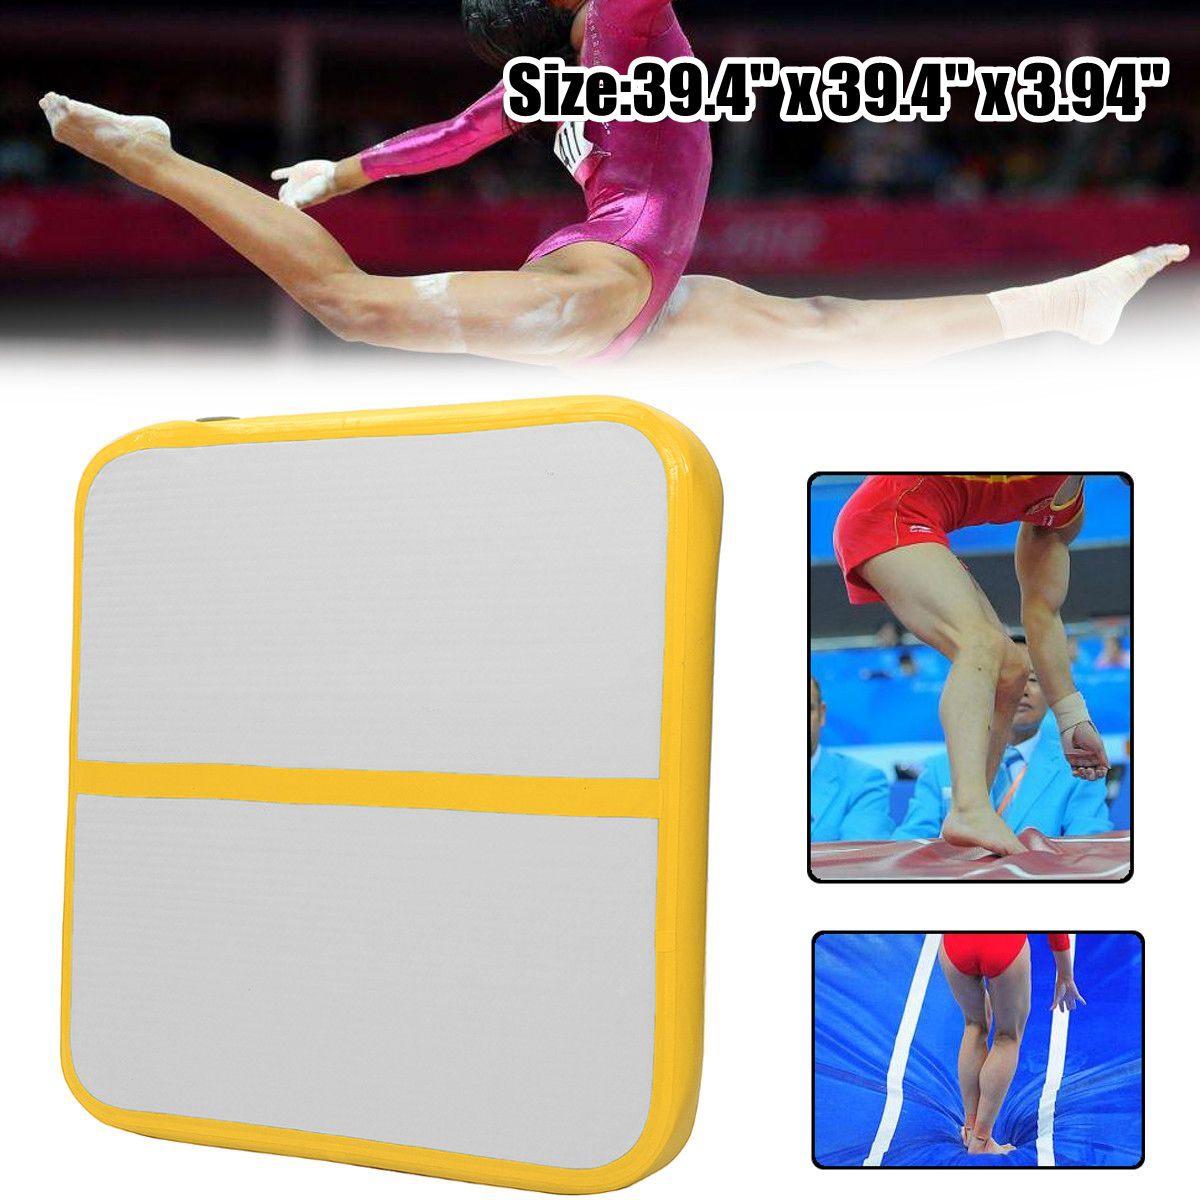 100x100x10cm Air Track Roller Floor Home Training Inflatable Gymnastics Tumbling Mat GYM for Kids100x100x10cm Air Track Roller Floor Home Training Inflatable Gymnastics Tumbling Mat GYM for Kids